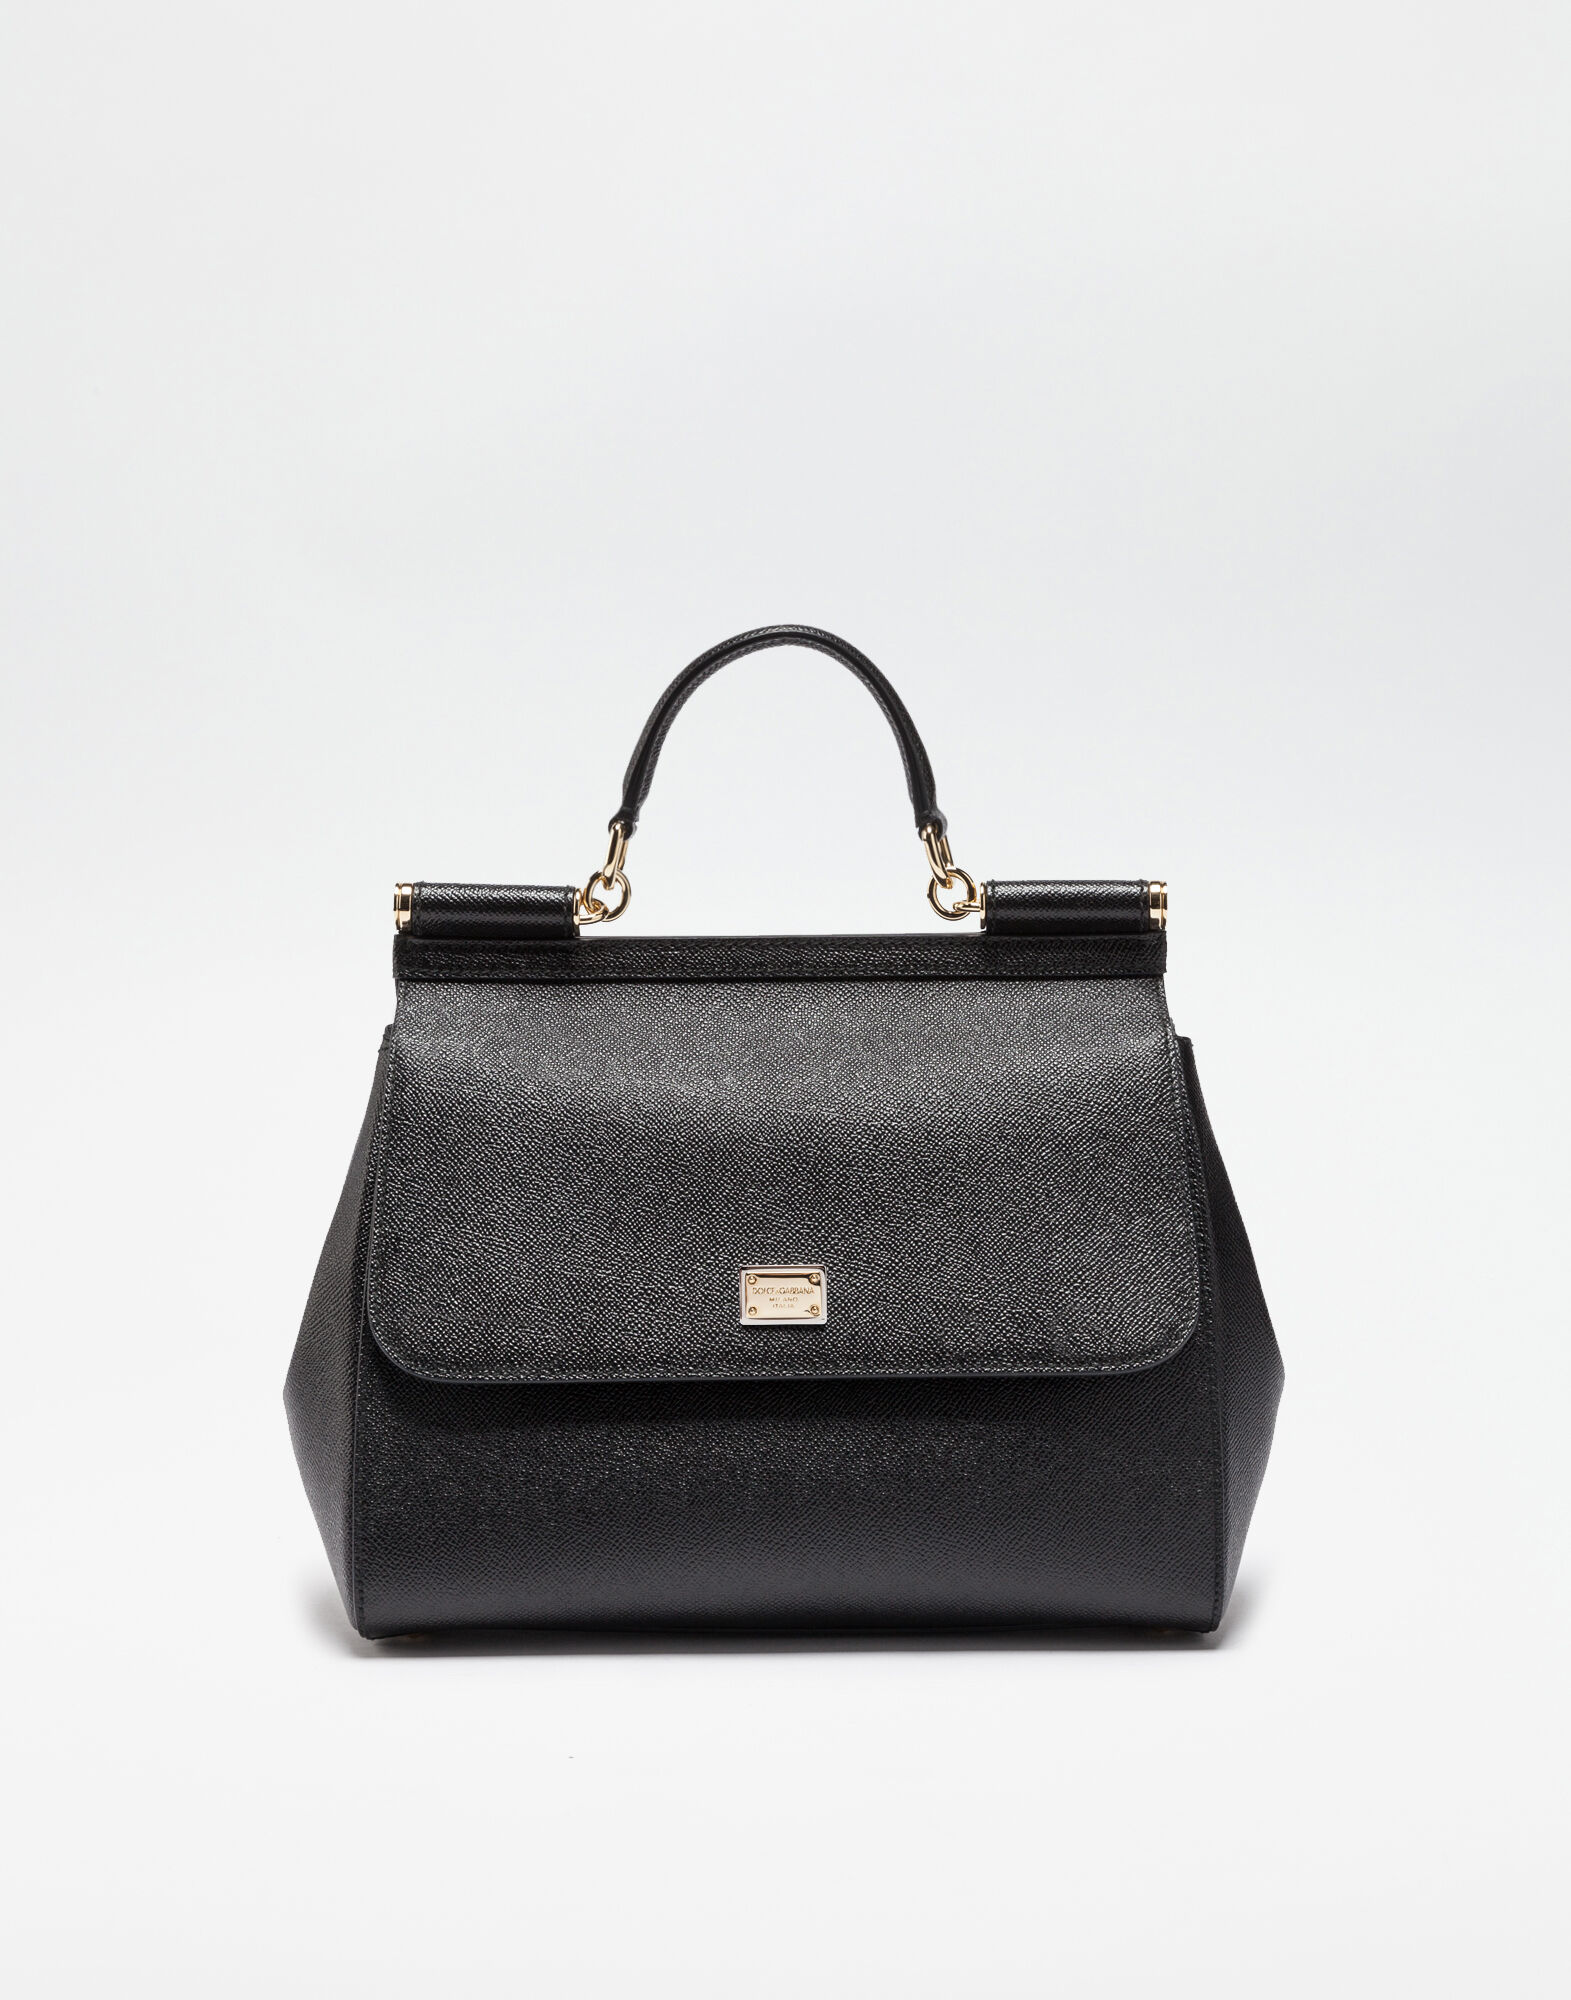 DAUPHINE LEATHER REGULAR SICILY BAG